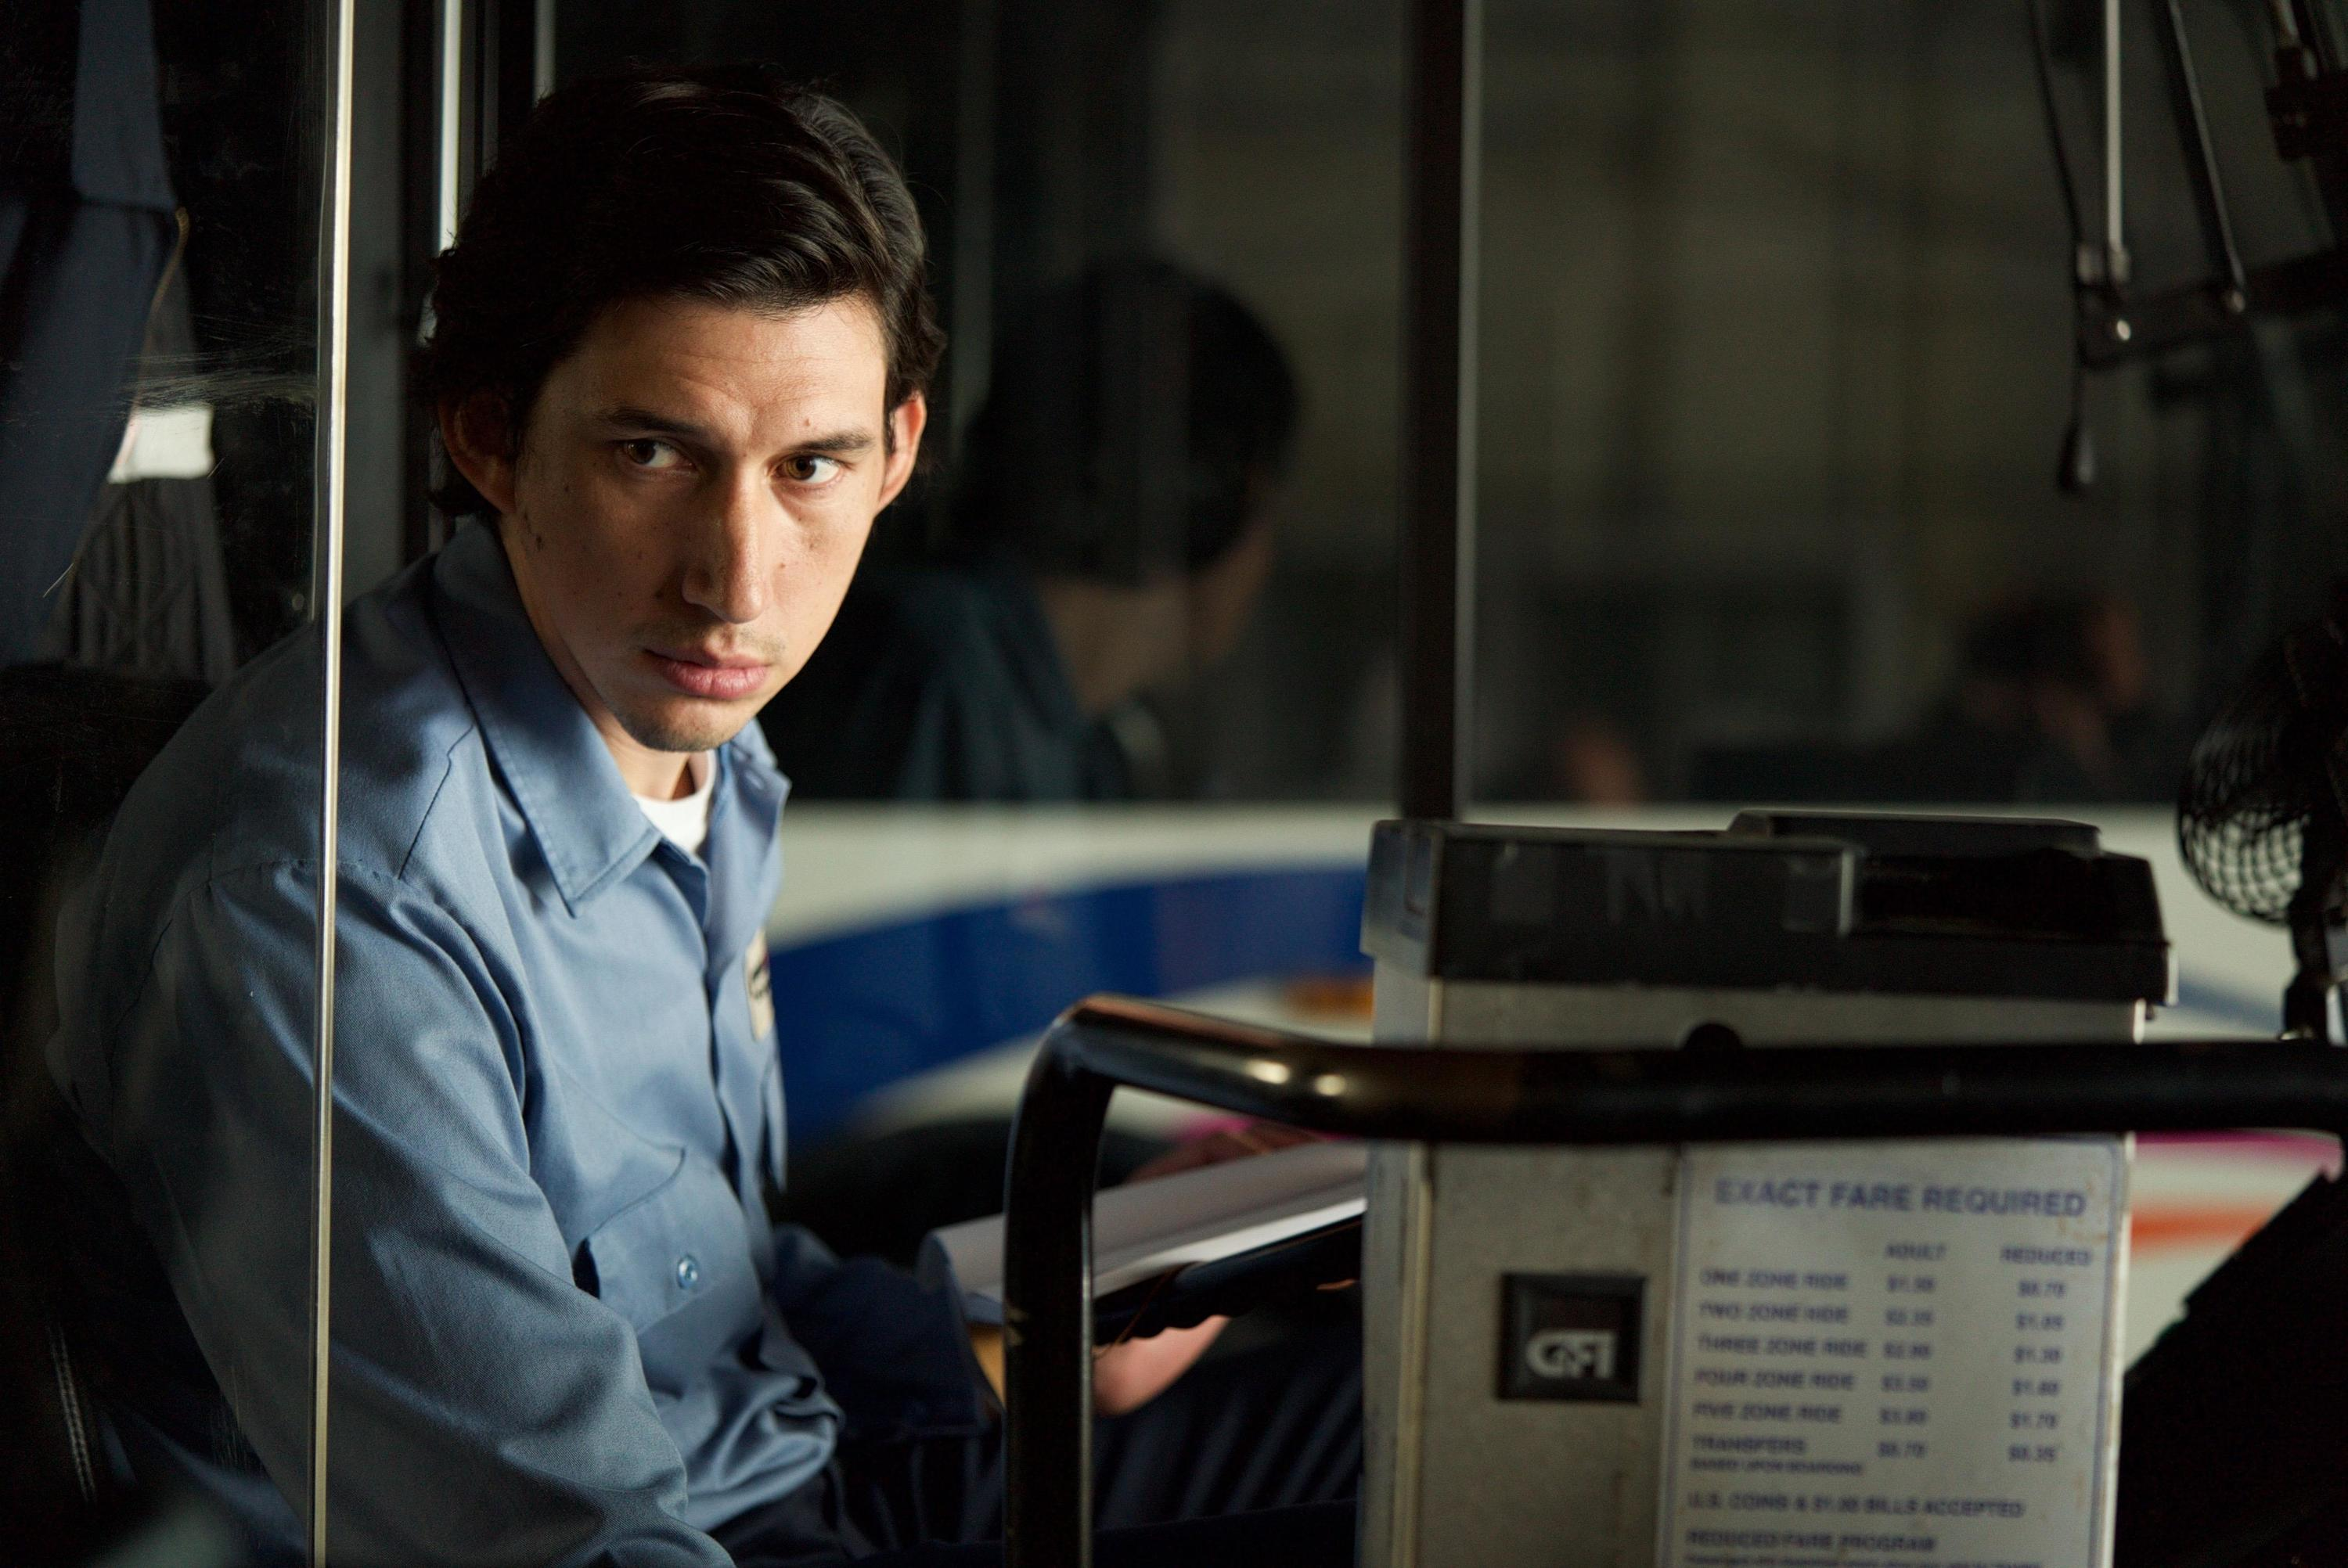 Paterson, the quietly philosophical tale of a bus-driving poet, is one of 2016's best films